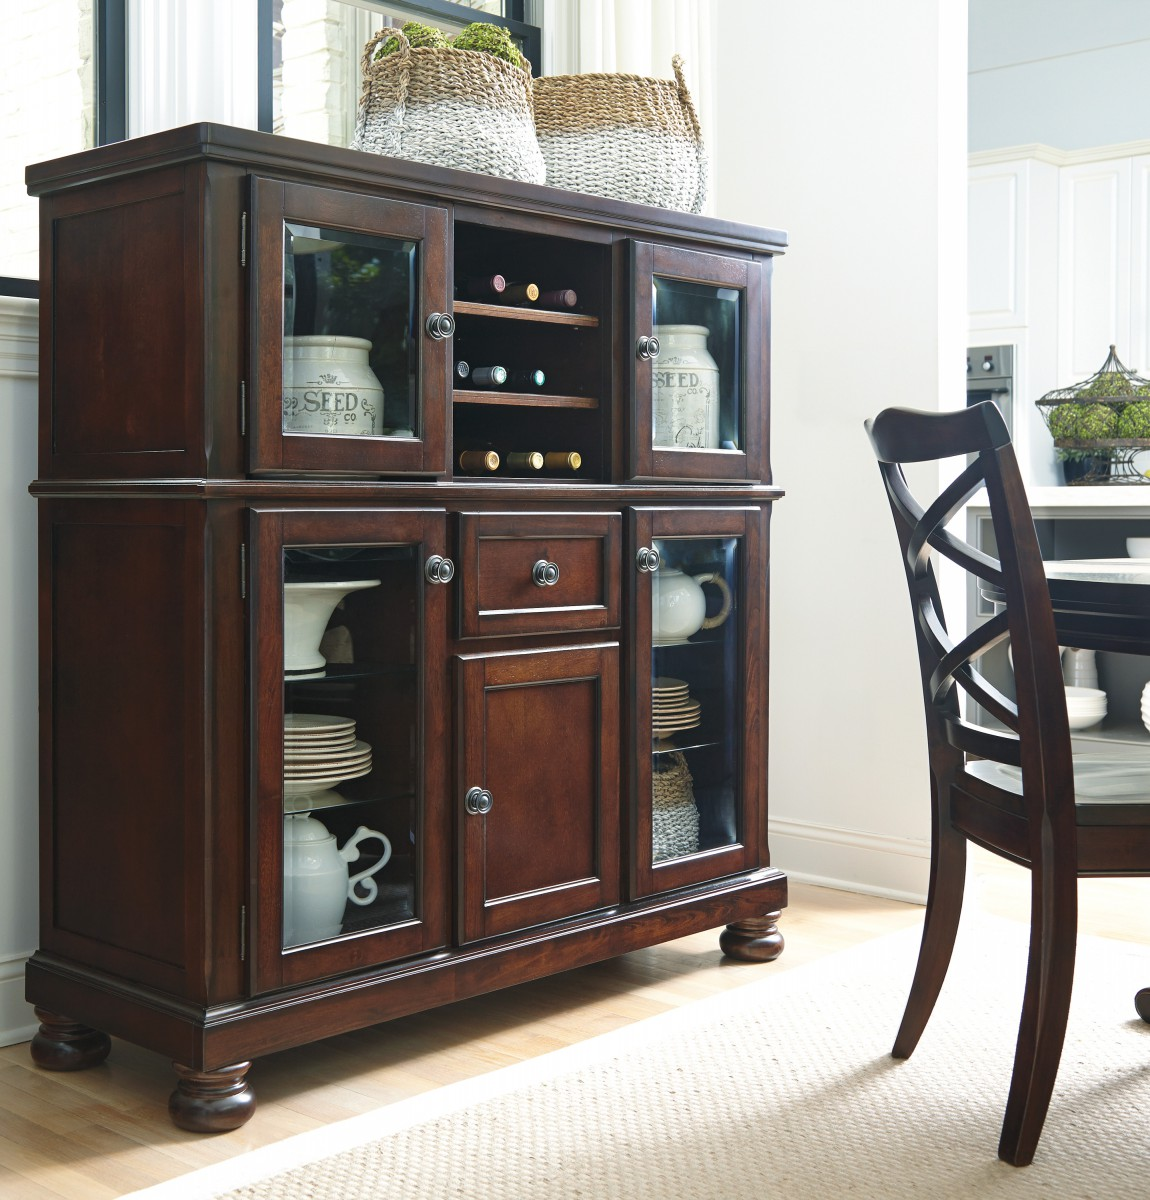 Discount Furniture Store Package 76: Millennium Porter Porter - Rustic Brown